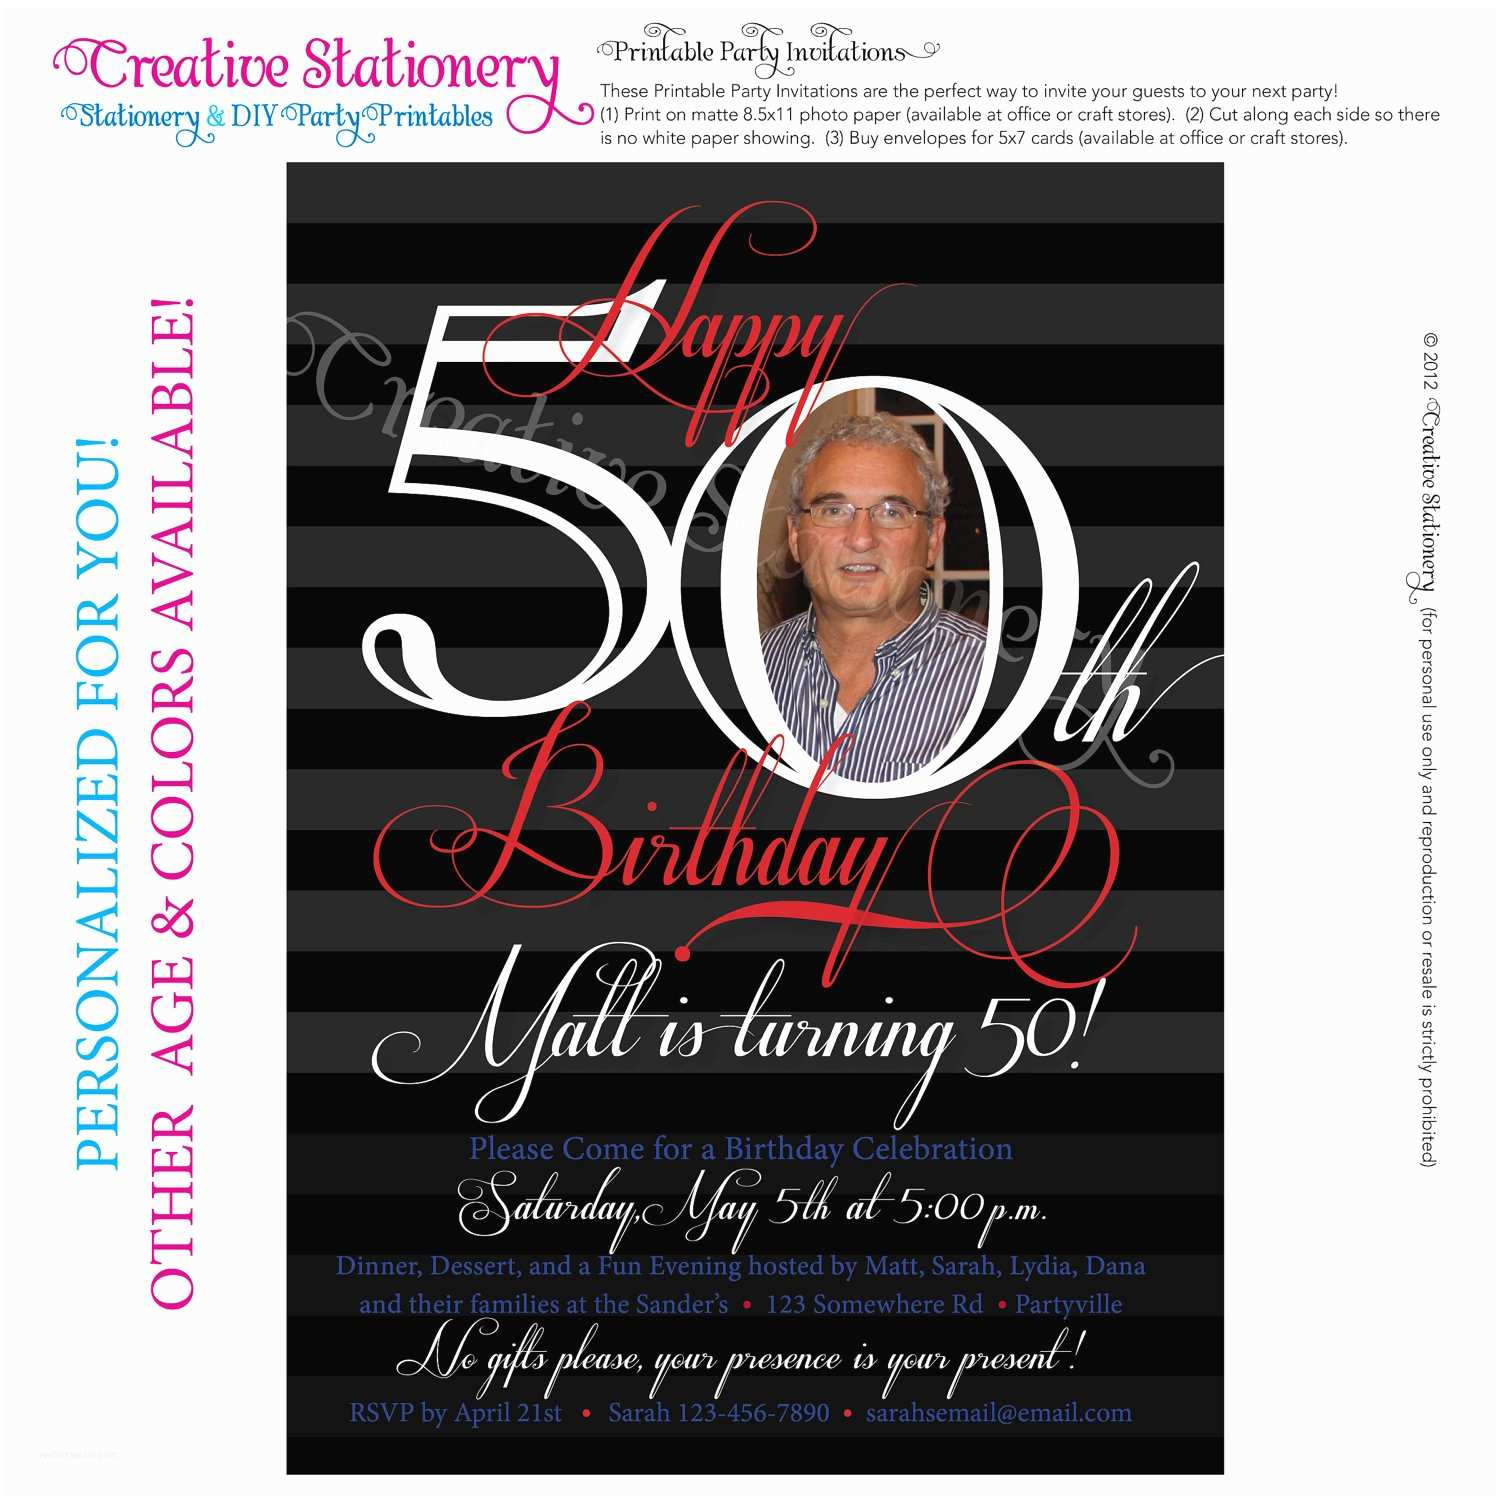 50th Birthday Invitations for Him How to Create 50th Birthday Invitations for Him Ideas